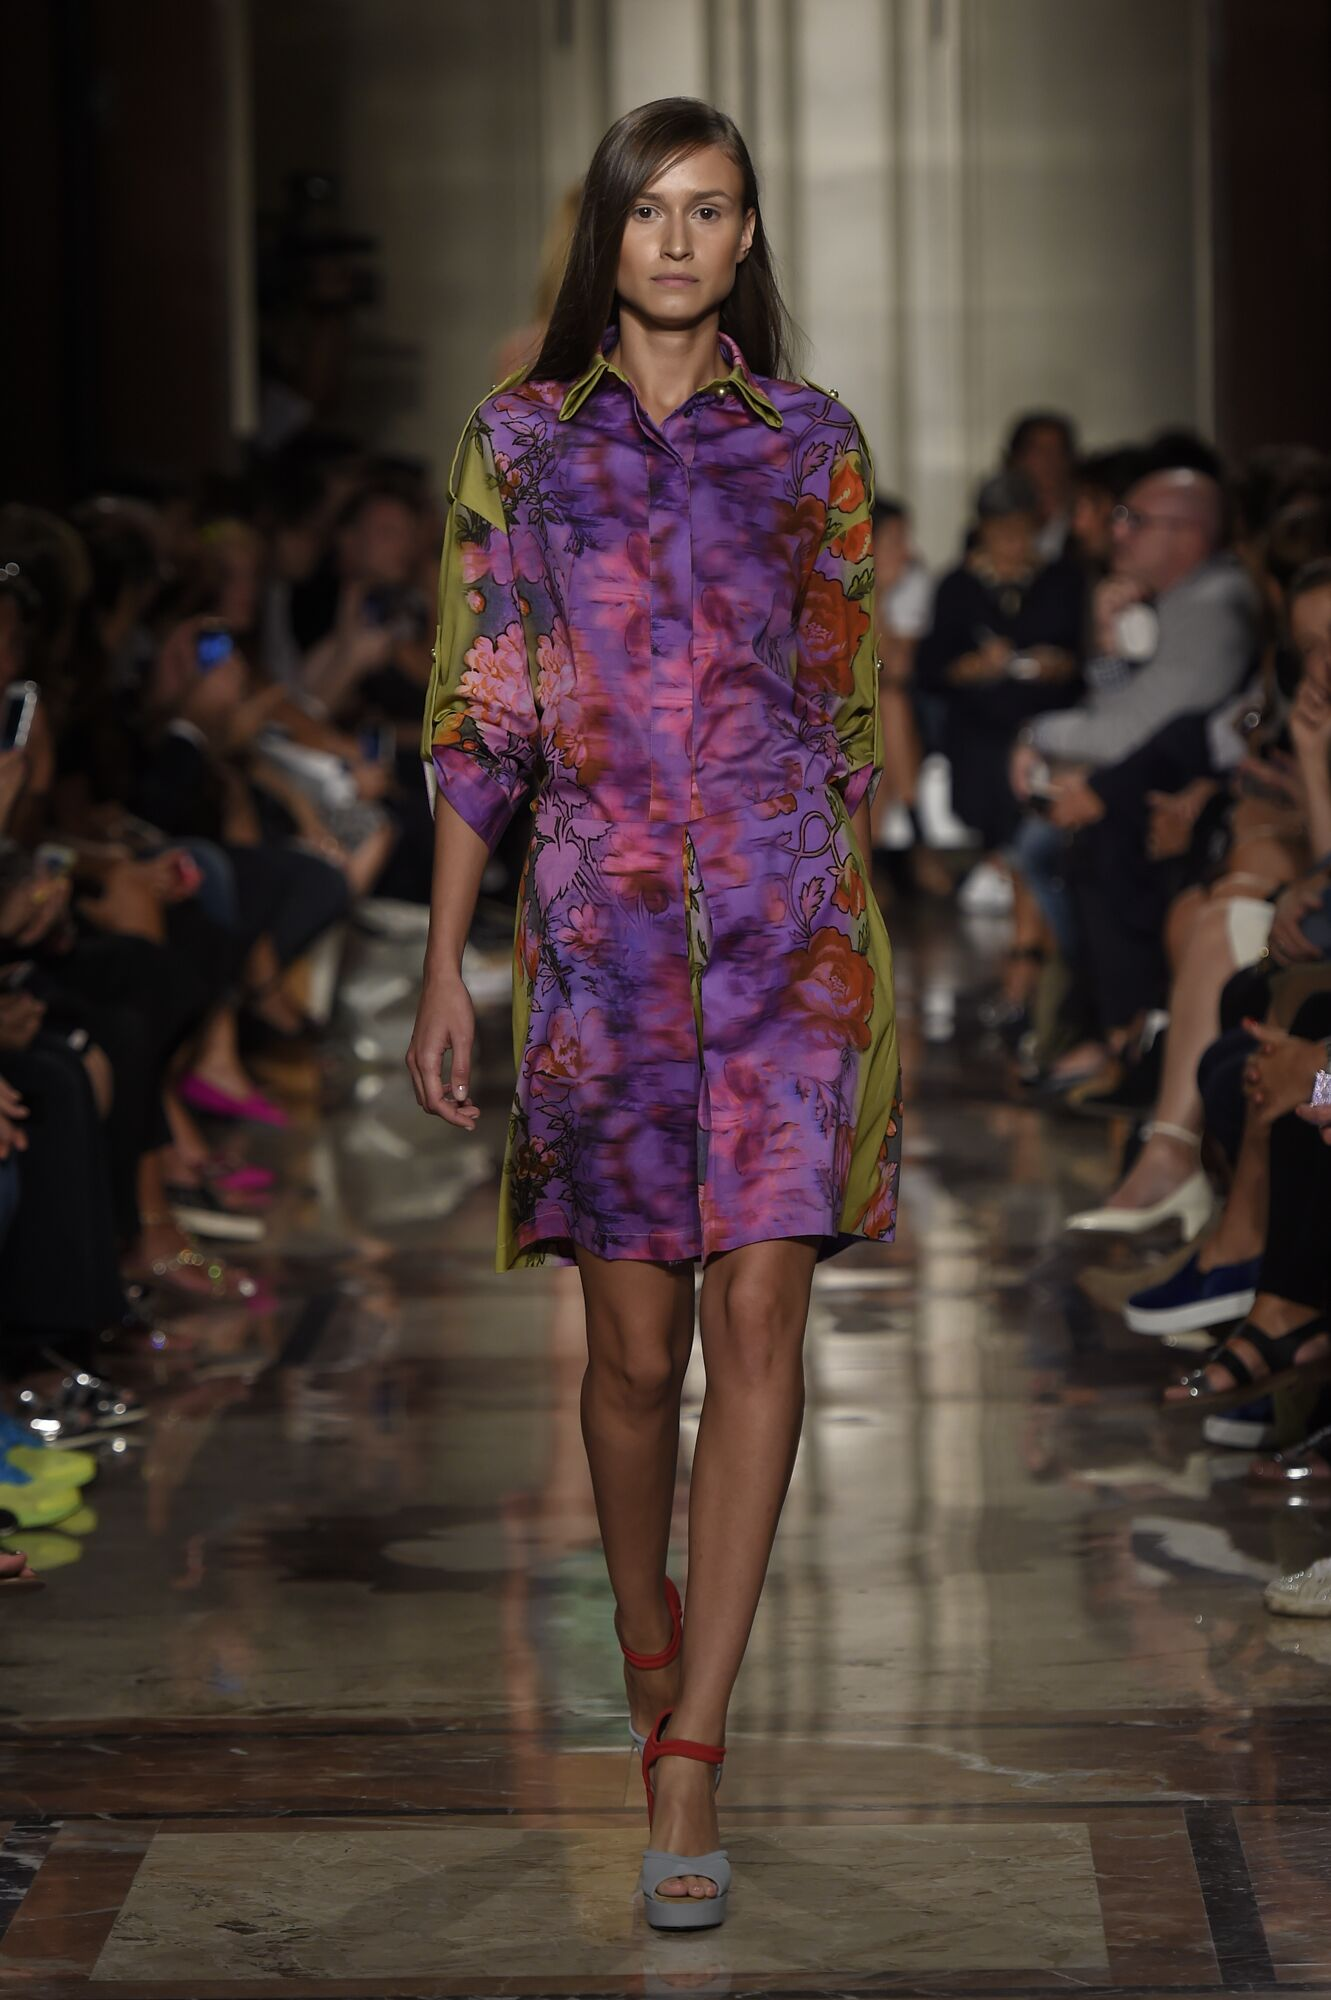 Spring 2015 Woman Fashion Show Andrea Incontri